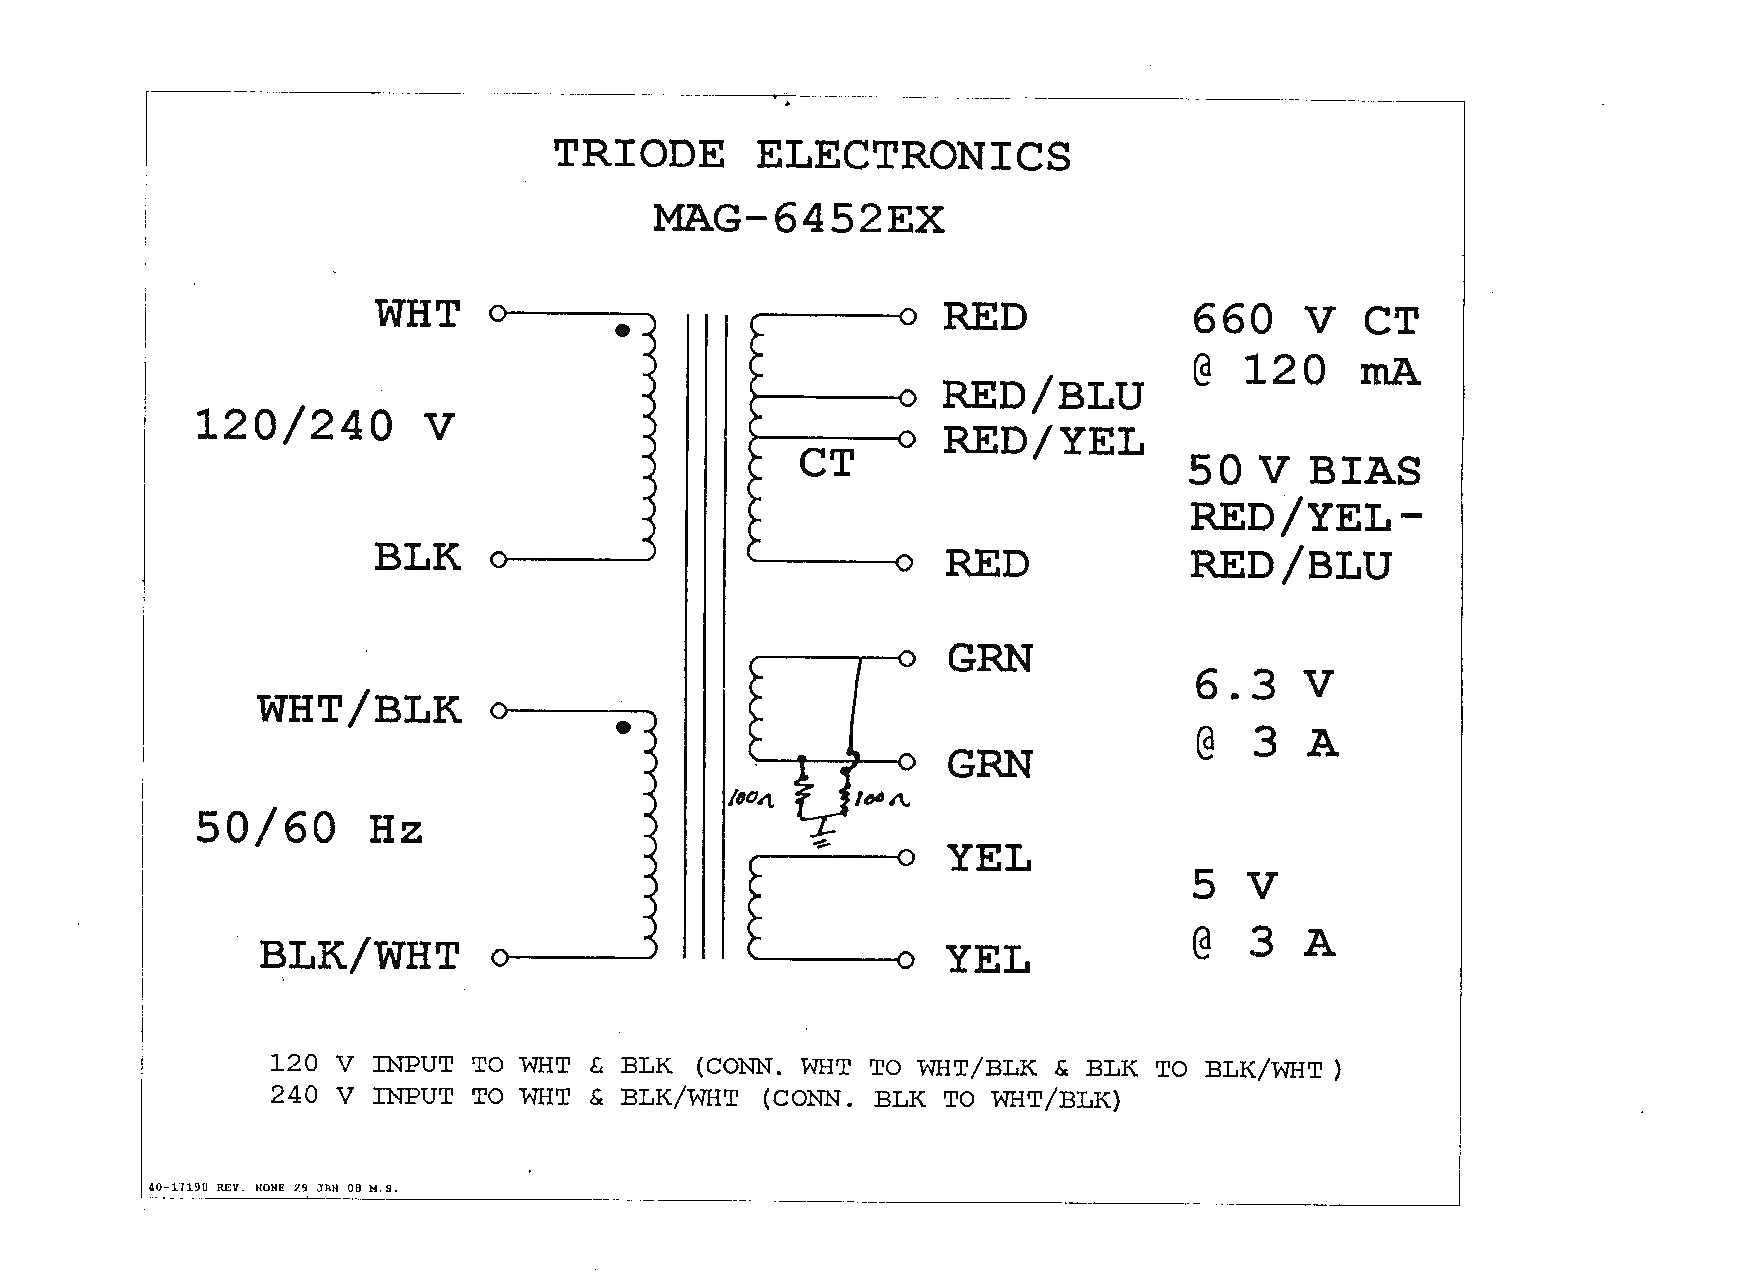 transformer wire diagram hs schema diagram databasetransformer wire diagram wiring diagram data transformer wire diagram hs